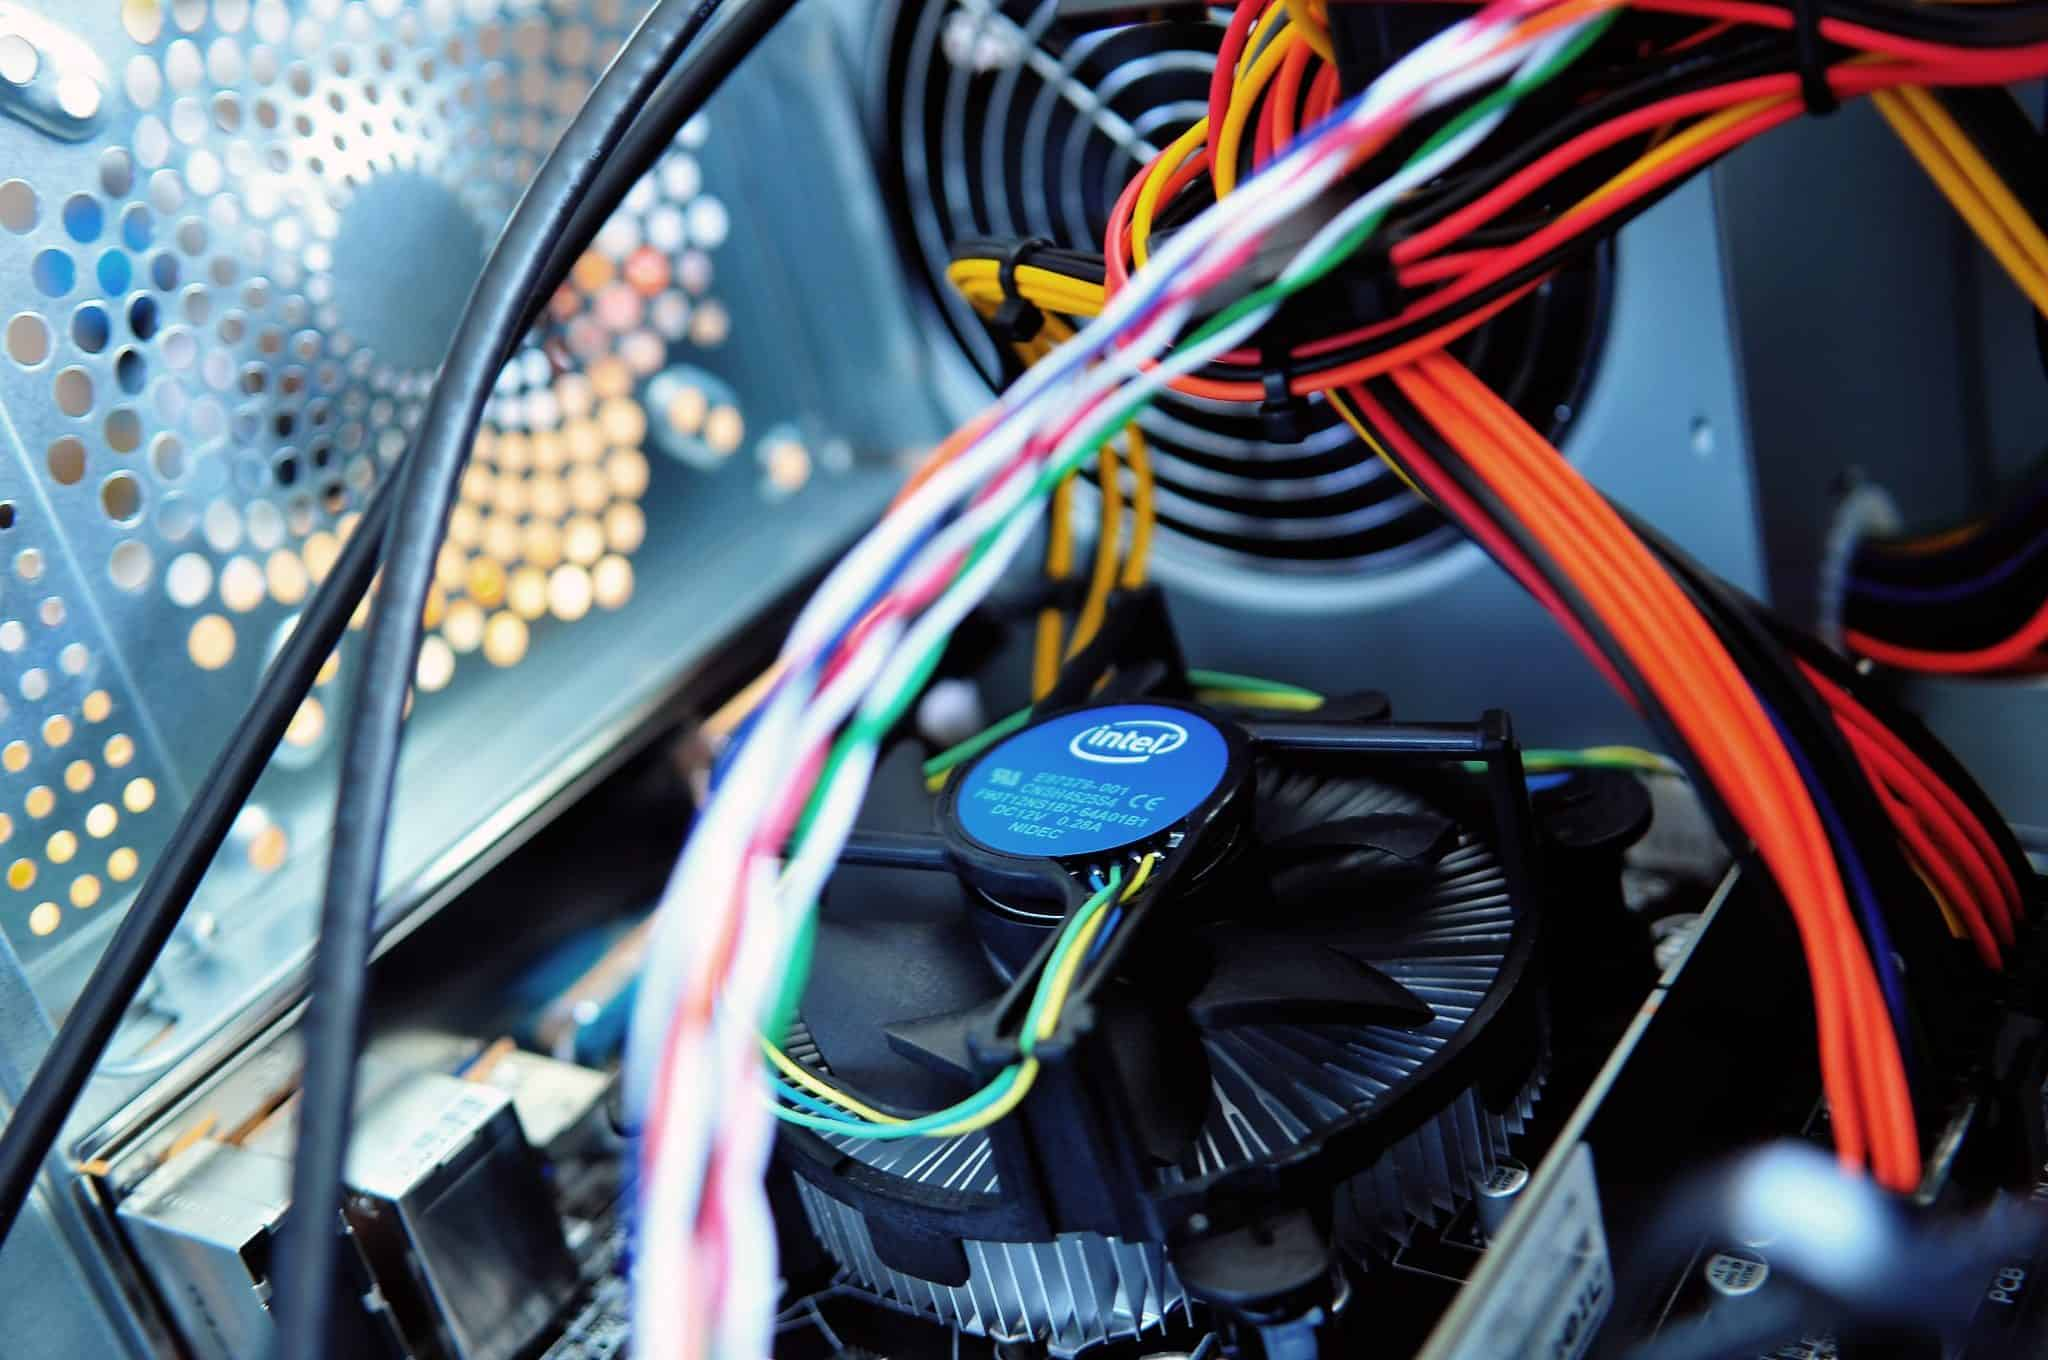 computer-motherboard-pc-wires[1]